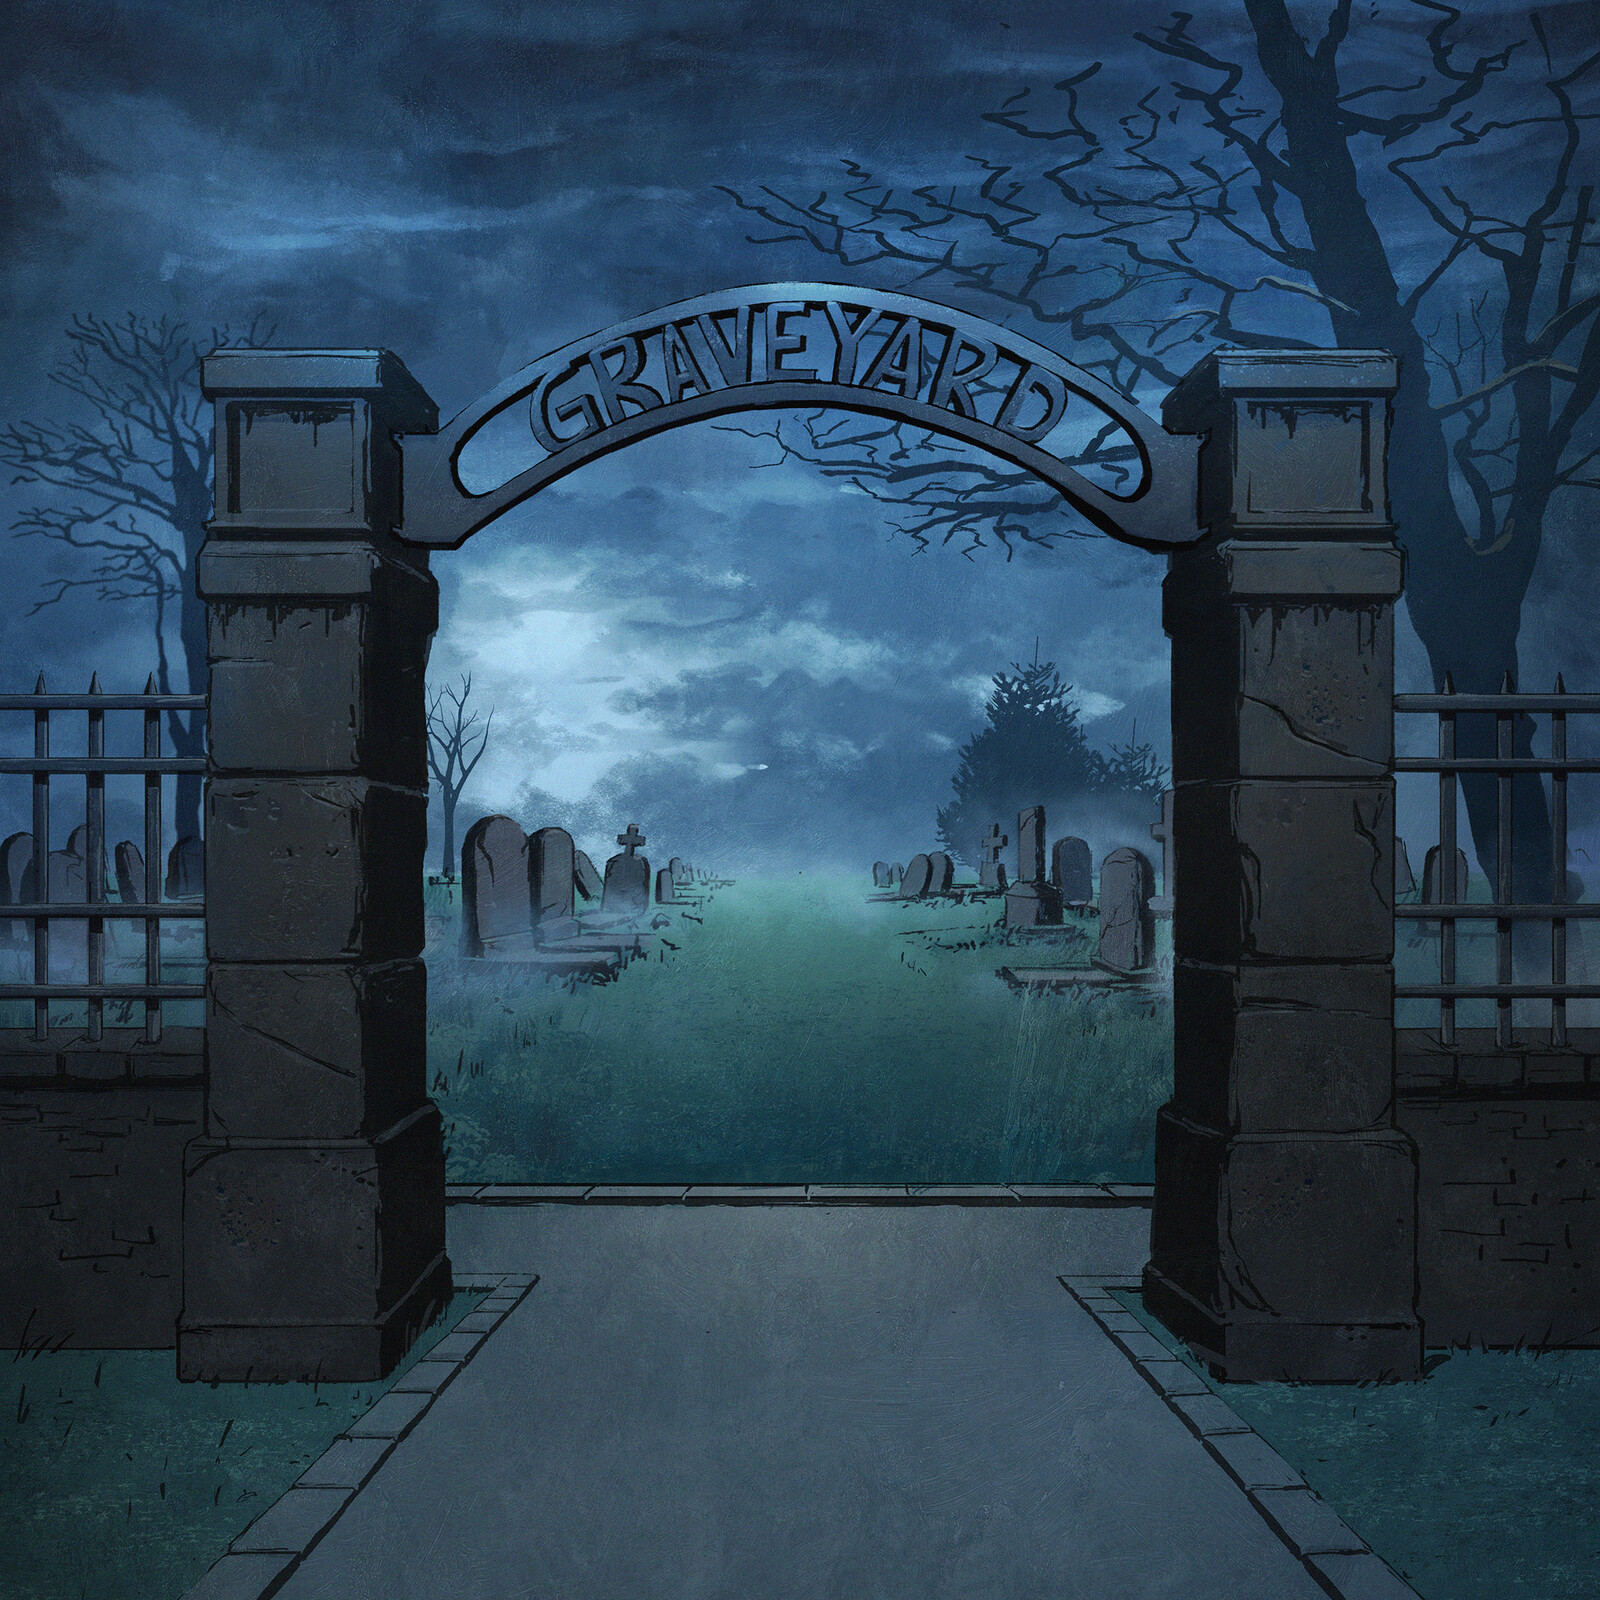 Backgrounds for FRND - Graveyard (music video)